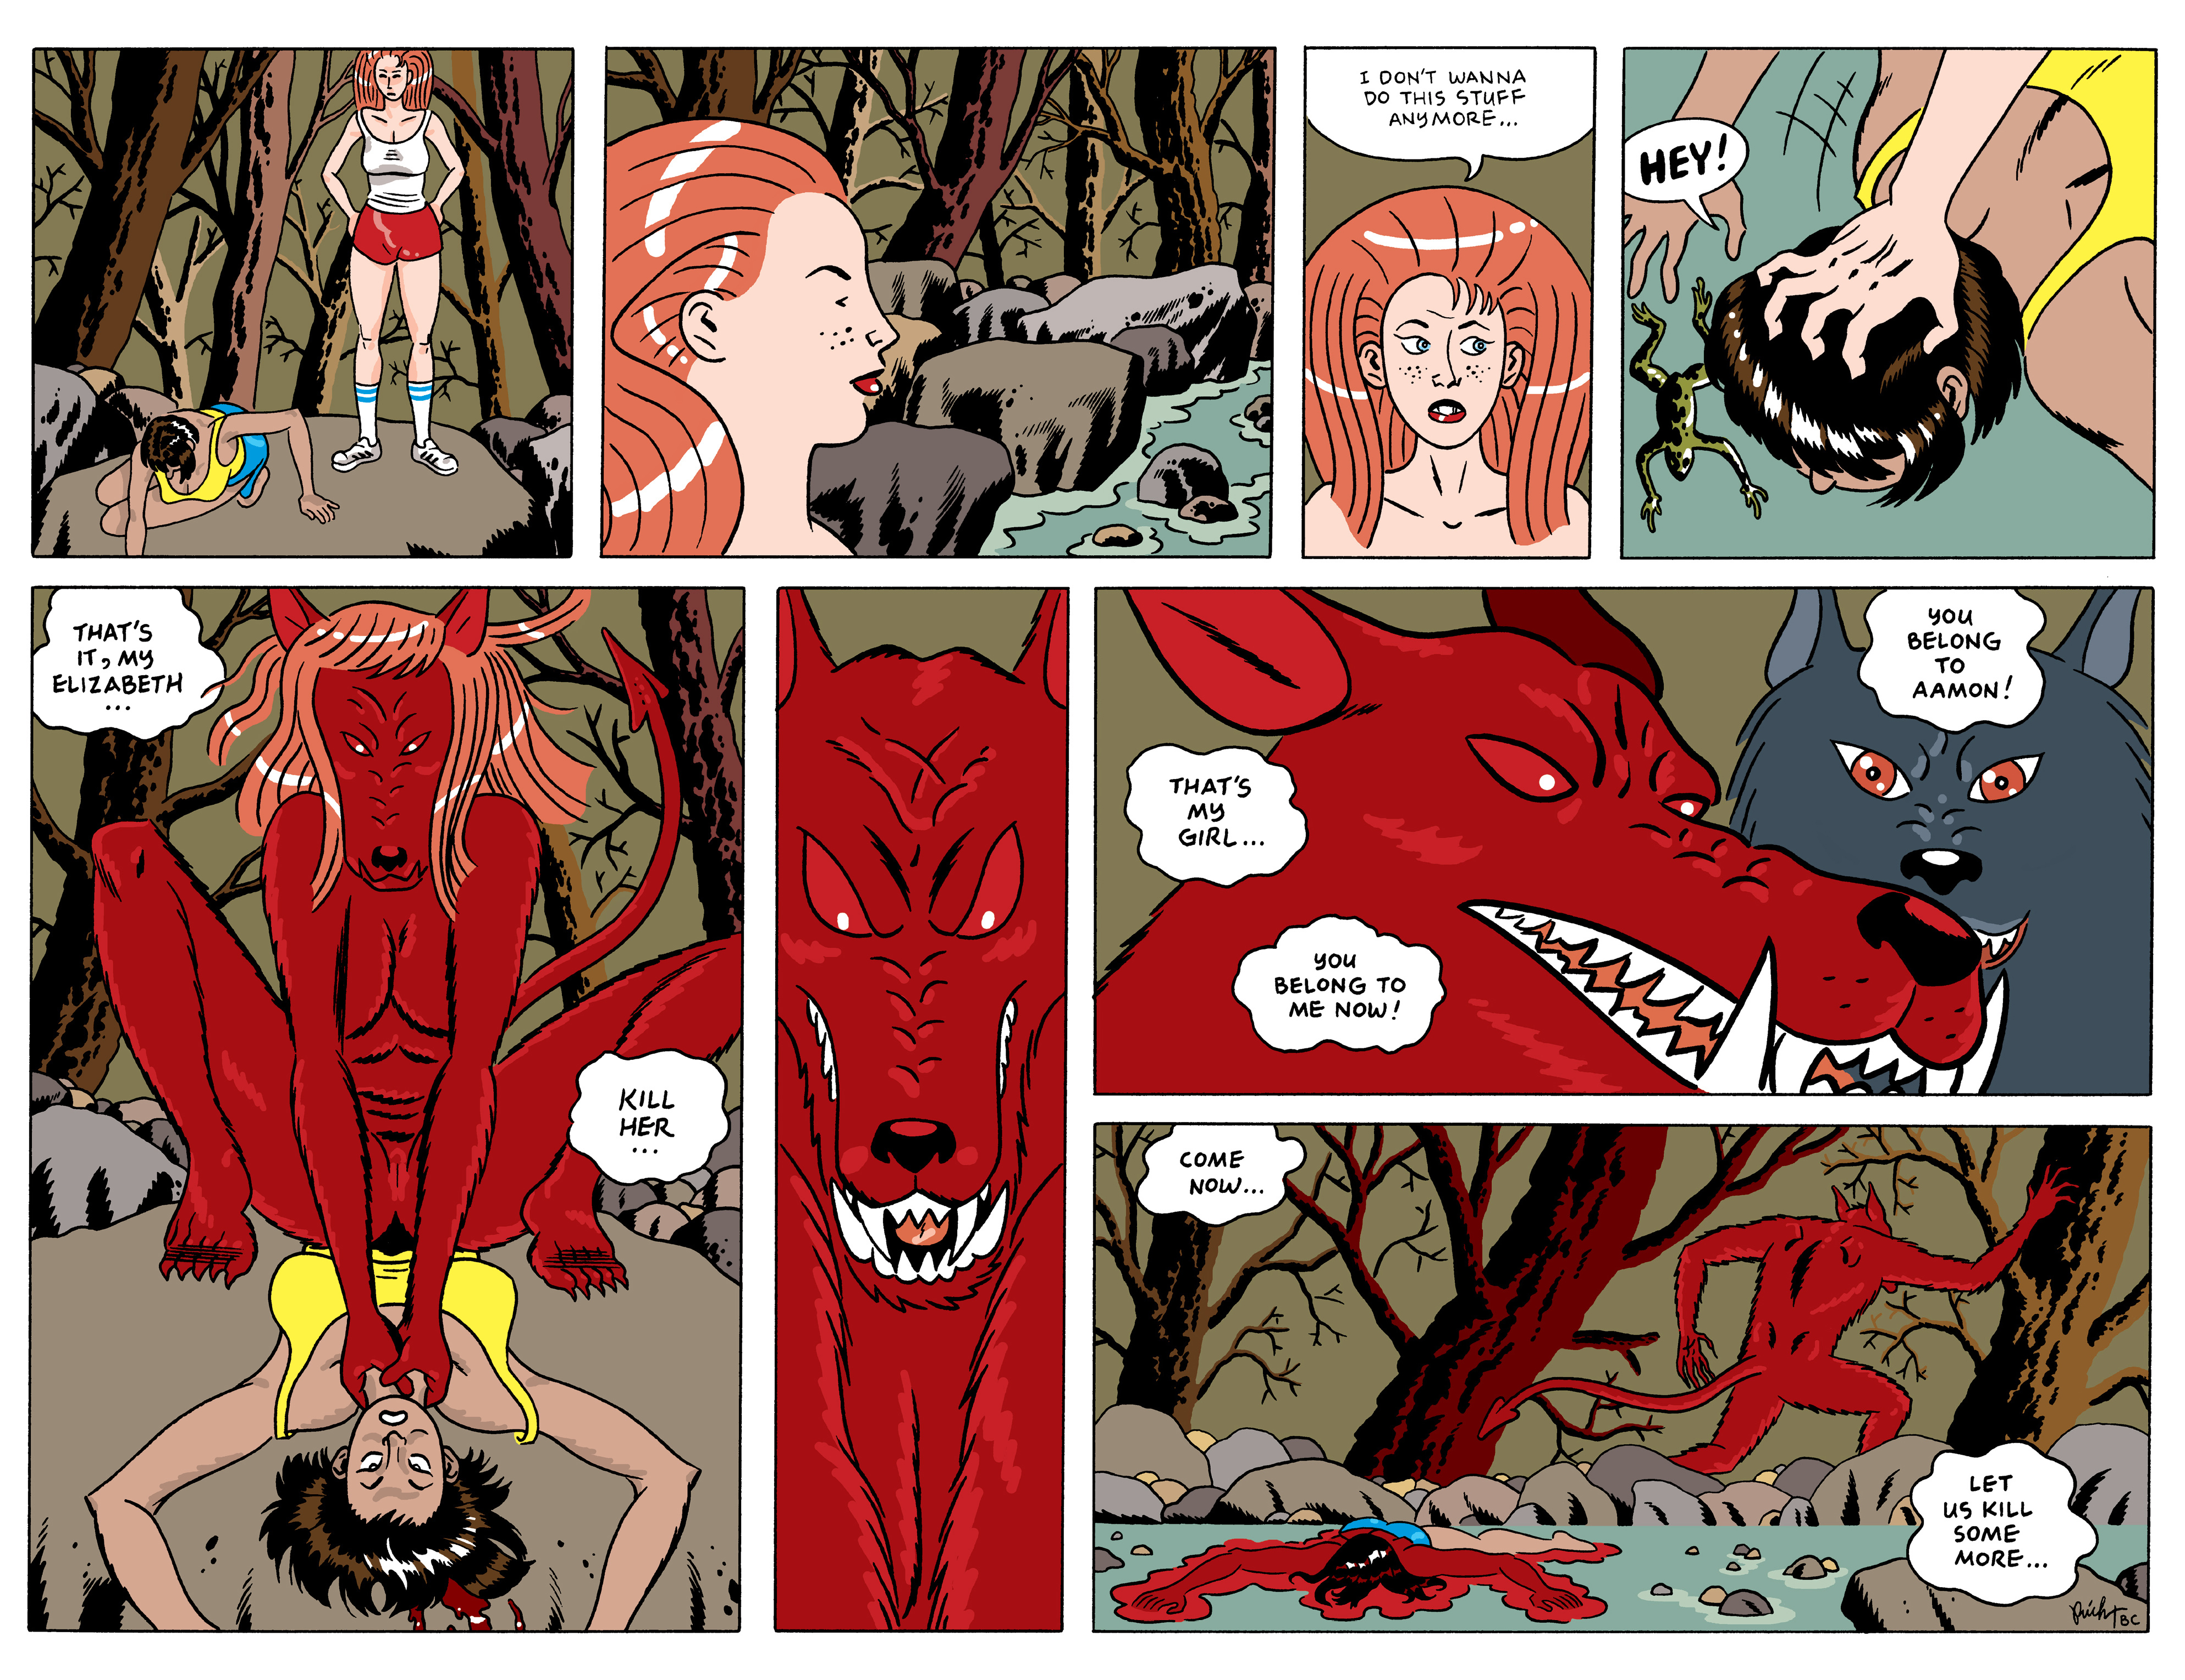 Read online She Wolf comic -  Issue #5 - 10